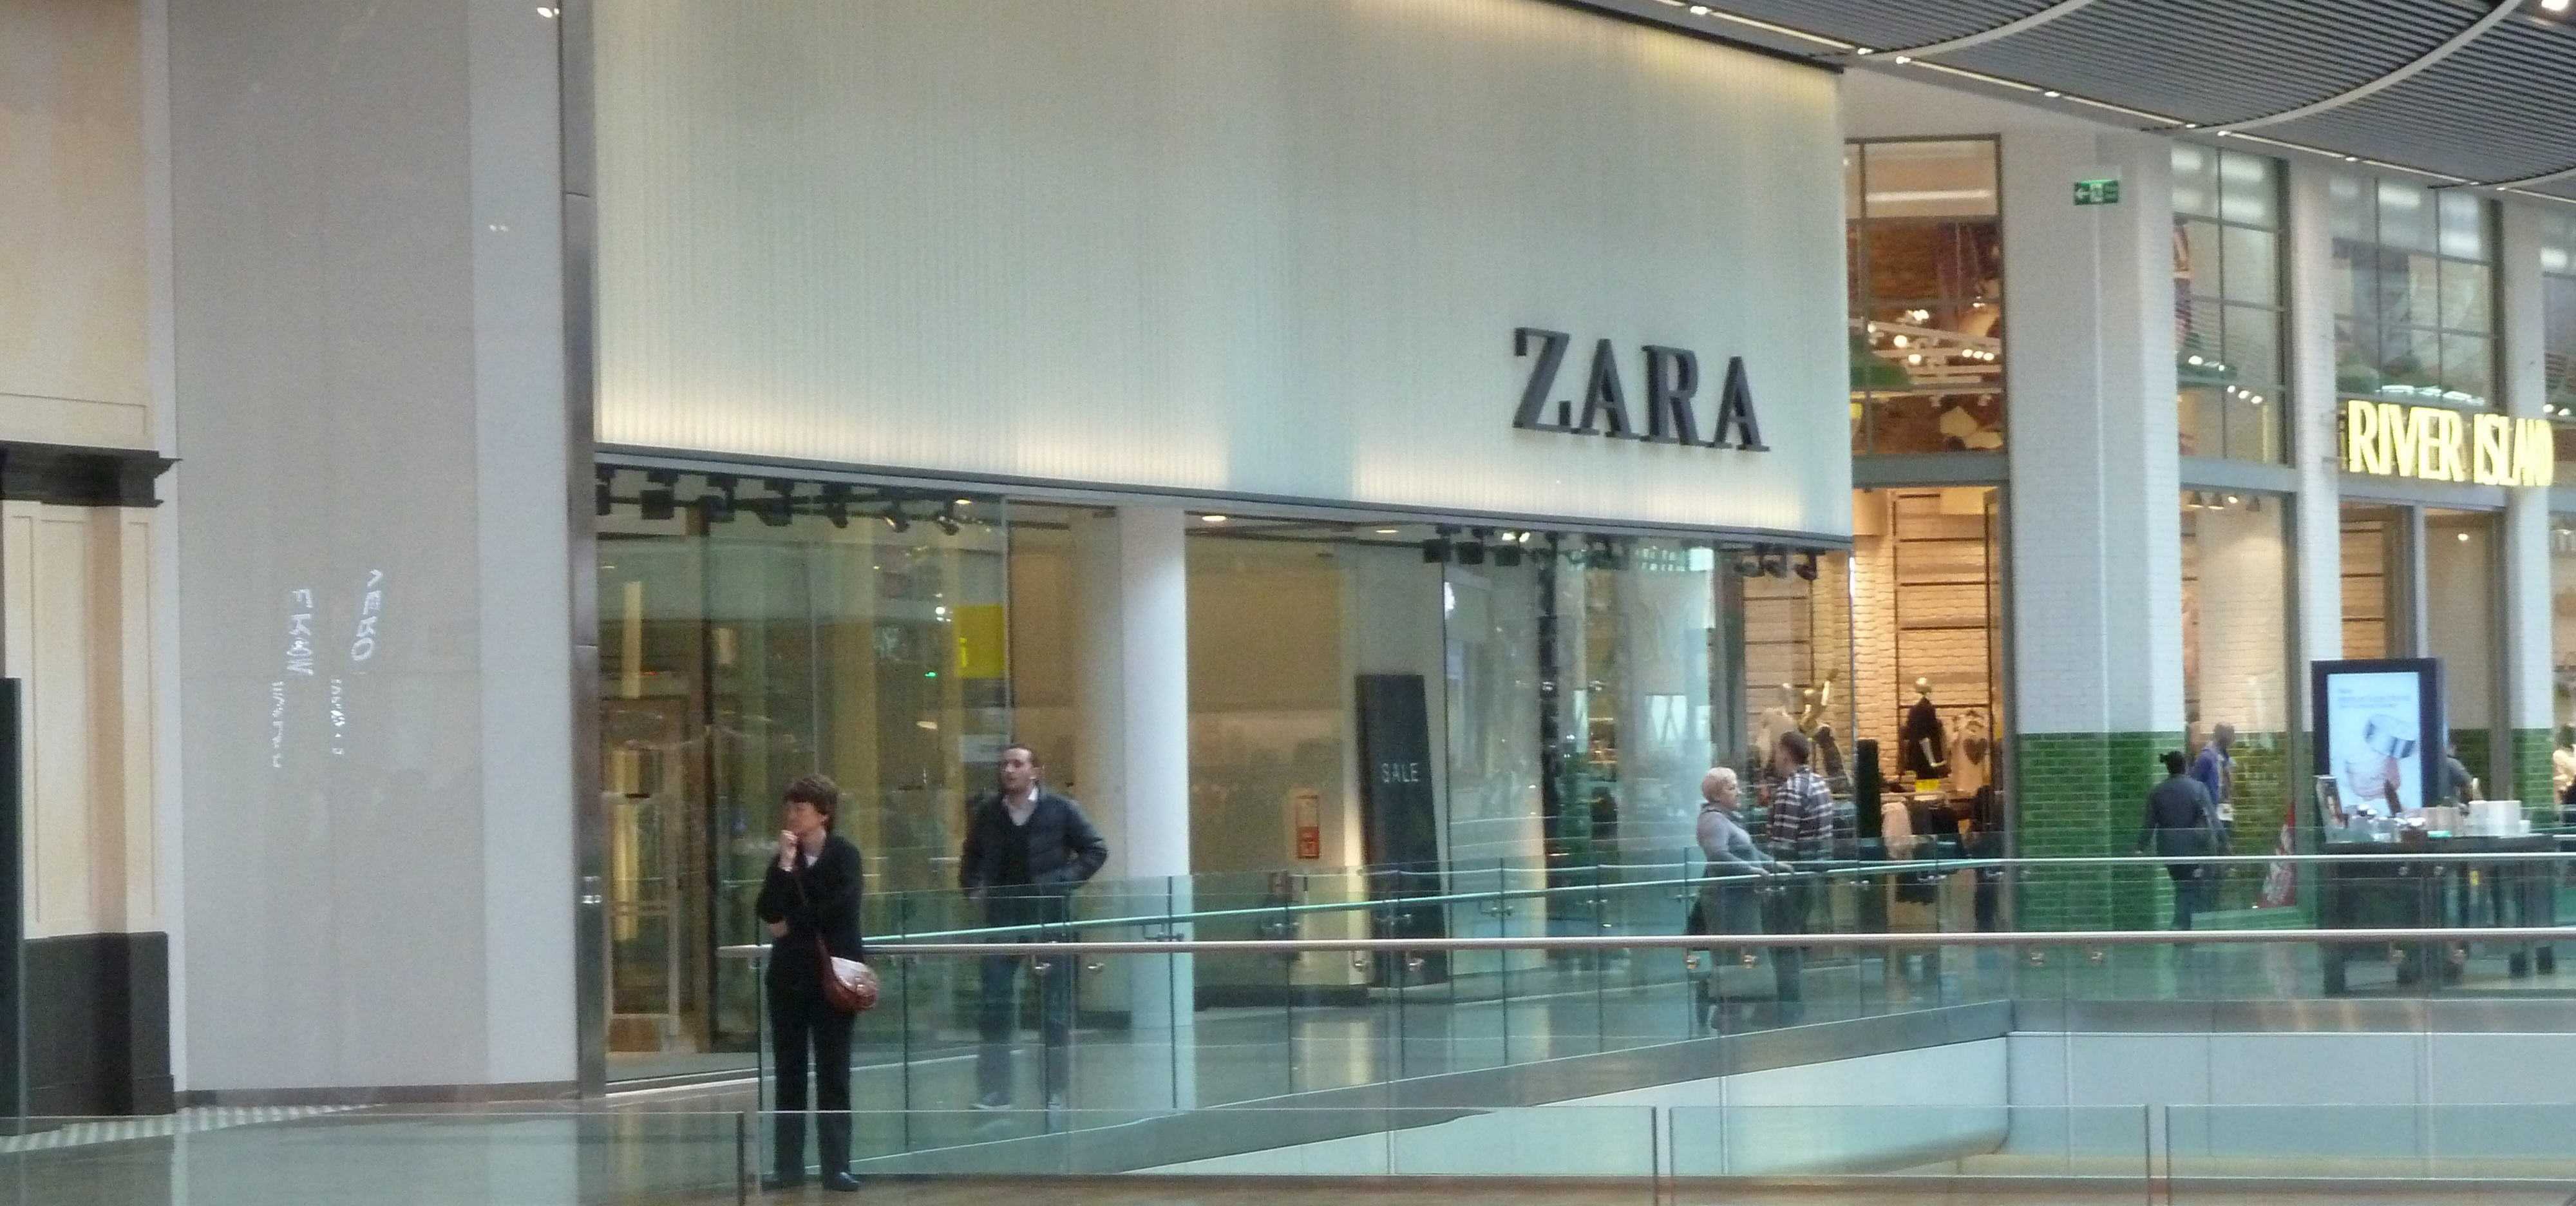 Zara Westfield Stratford City The Owner of Zara, Is Now Richer Than Warren Buffett